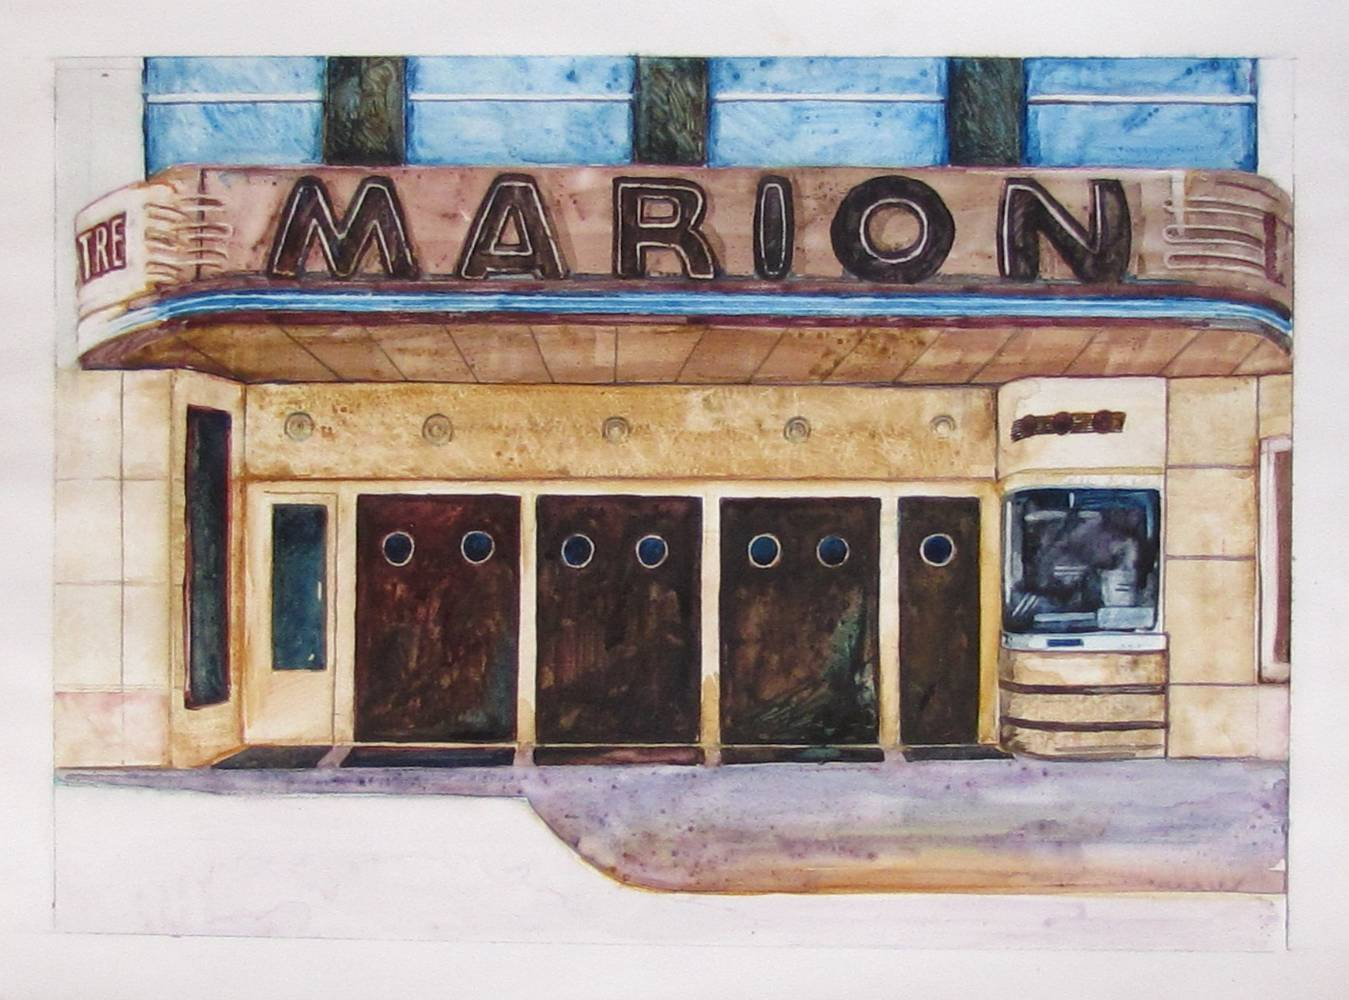 Watercolor The Marion by Paul Sershon